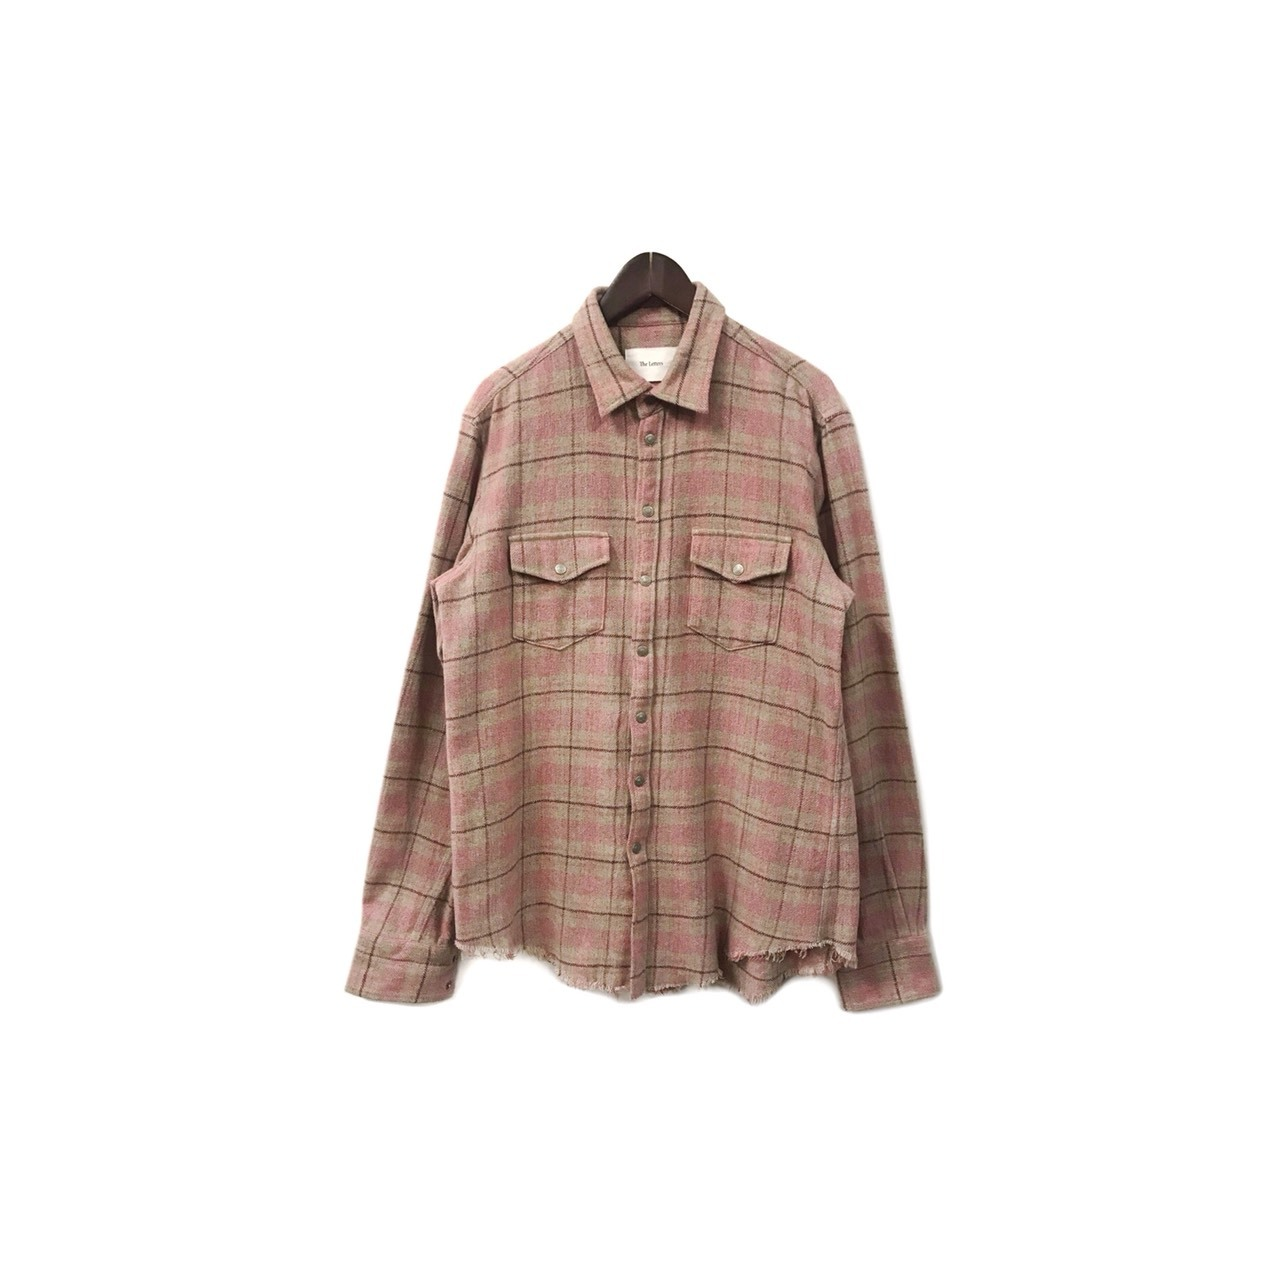 The Letters - Flannel Check Shirt (size - L) ¥16500+tax